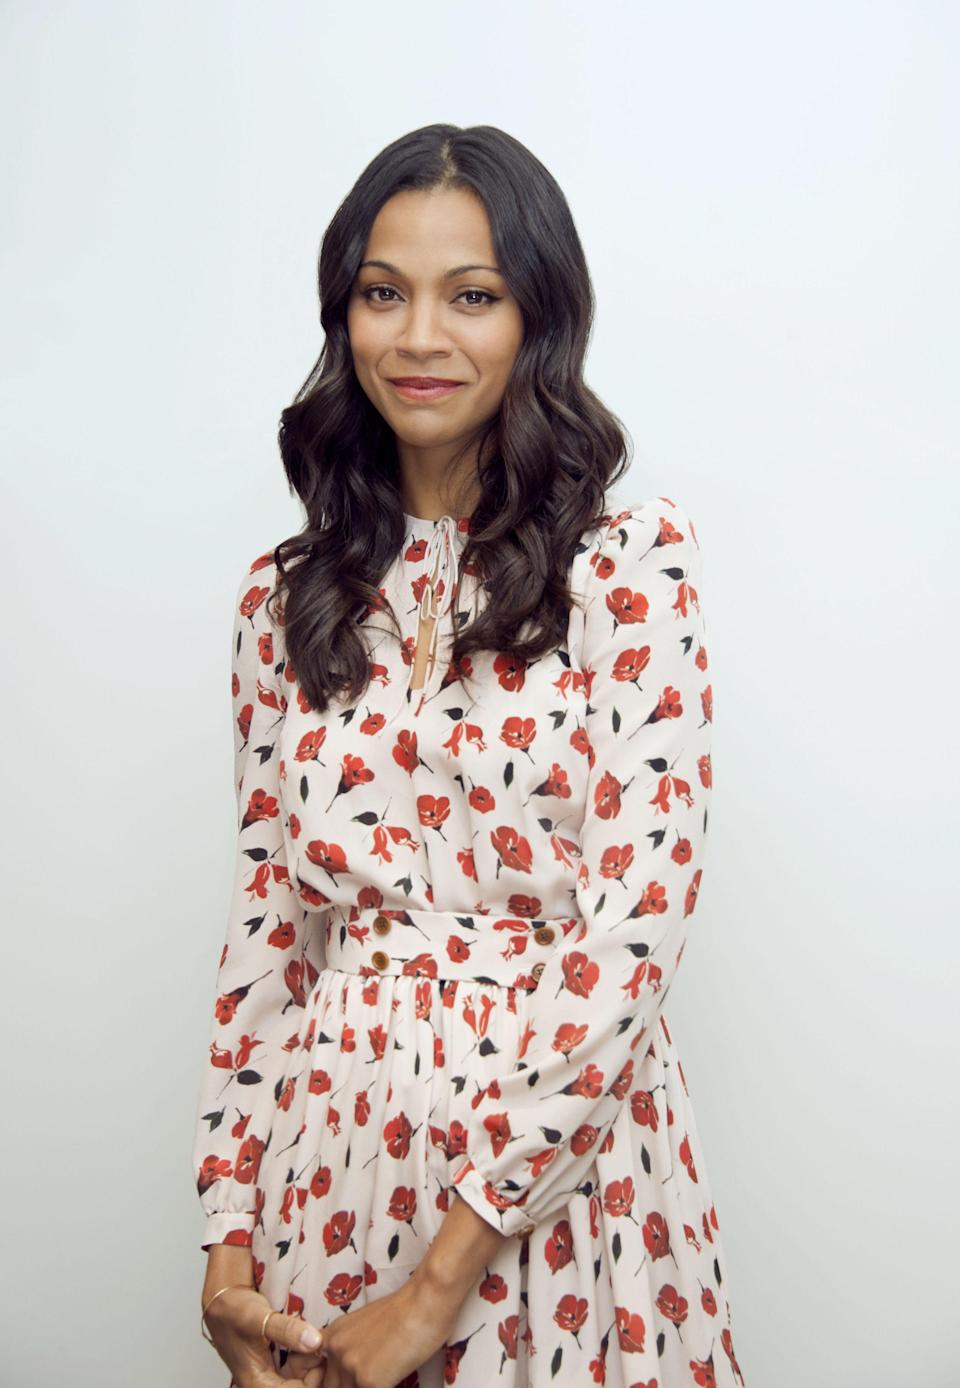 """<p>One of the few members of the Hollywood A-list <a href=""""http://www.harpersbazaar.com/celebrity/latest/news/a19982/zoe-saldana-trump-bullied/"""" rel=""""nofollow noopener"""" target=""""_blank"""" data-ylk=""""slk:self-aware enough"""" class=""""link rapid-noclick-resp"""">self-aware enough</a> to realise that Hollywood A-list<span>ers moralising about politics wasn't likely to help the liberal cause, Zoe Saldana is by all accounts one of the most down to earth Beautiful People in the world of Beautiful People. </span></p>"""